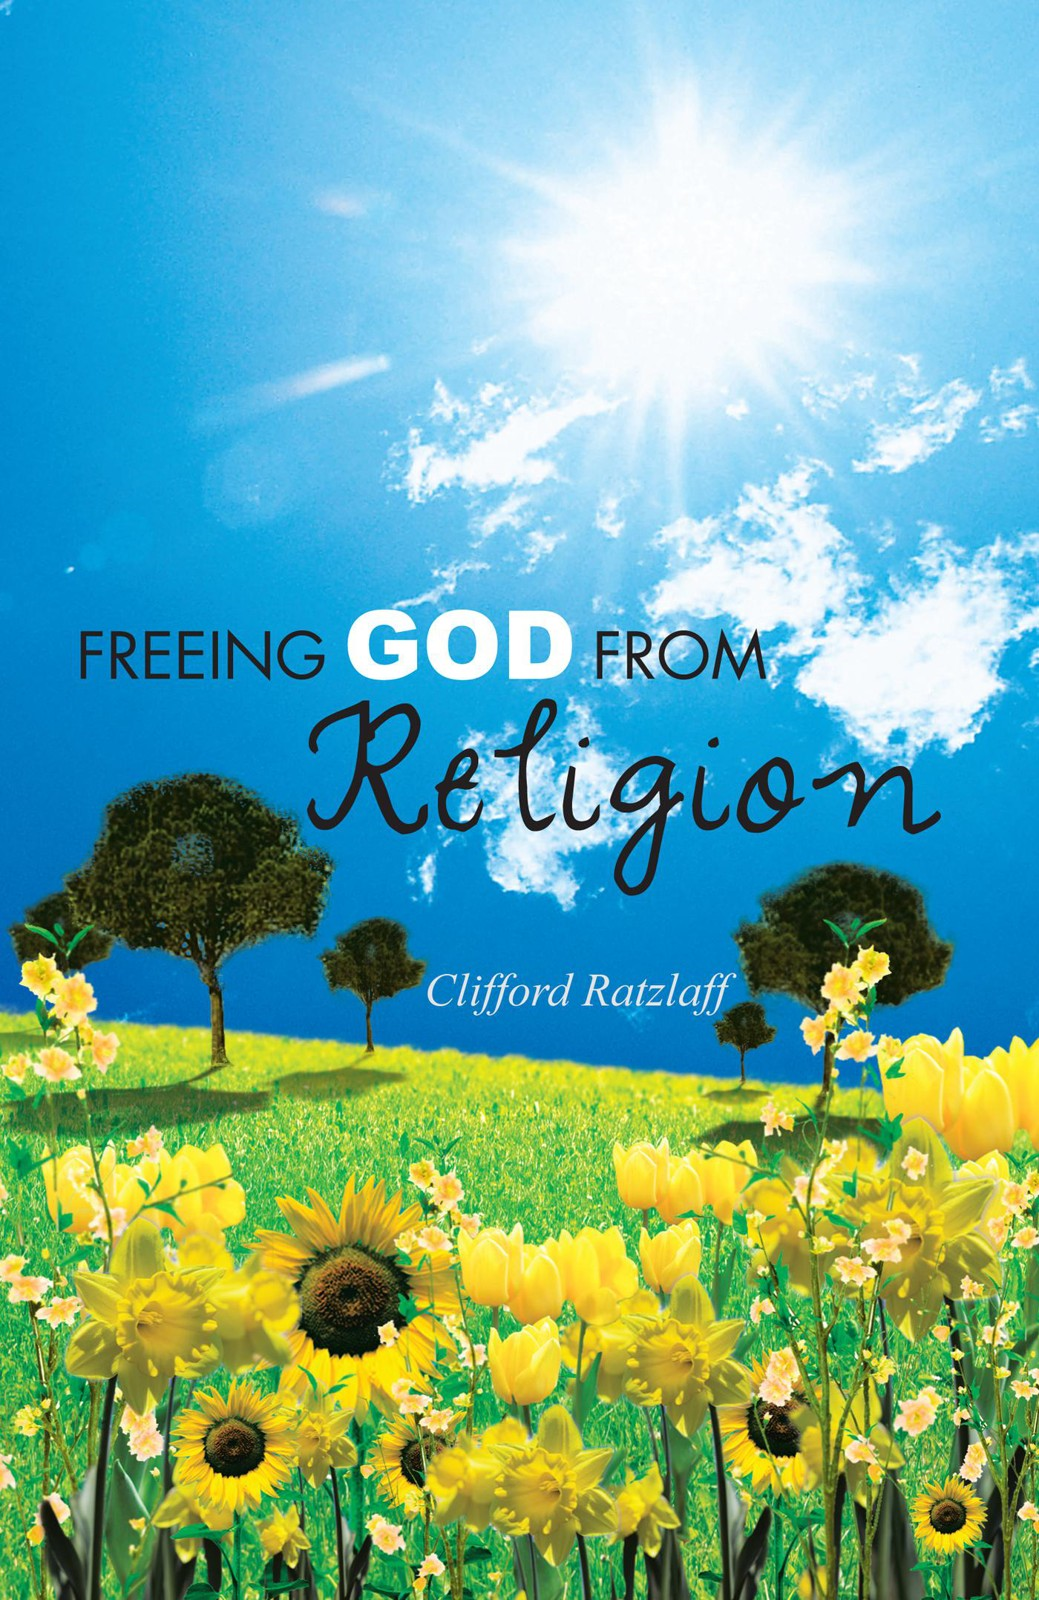 FREEING GOD FROM RELIGION